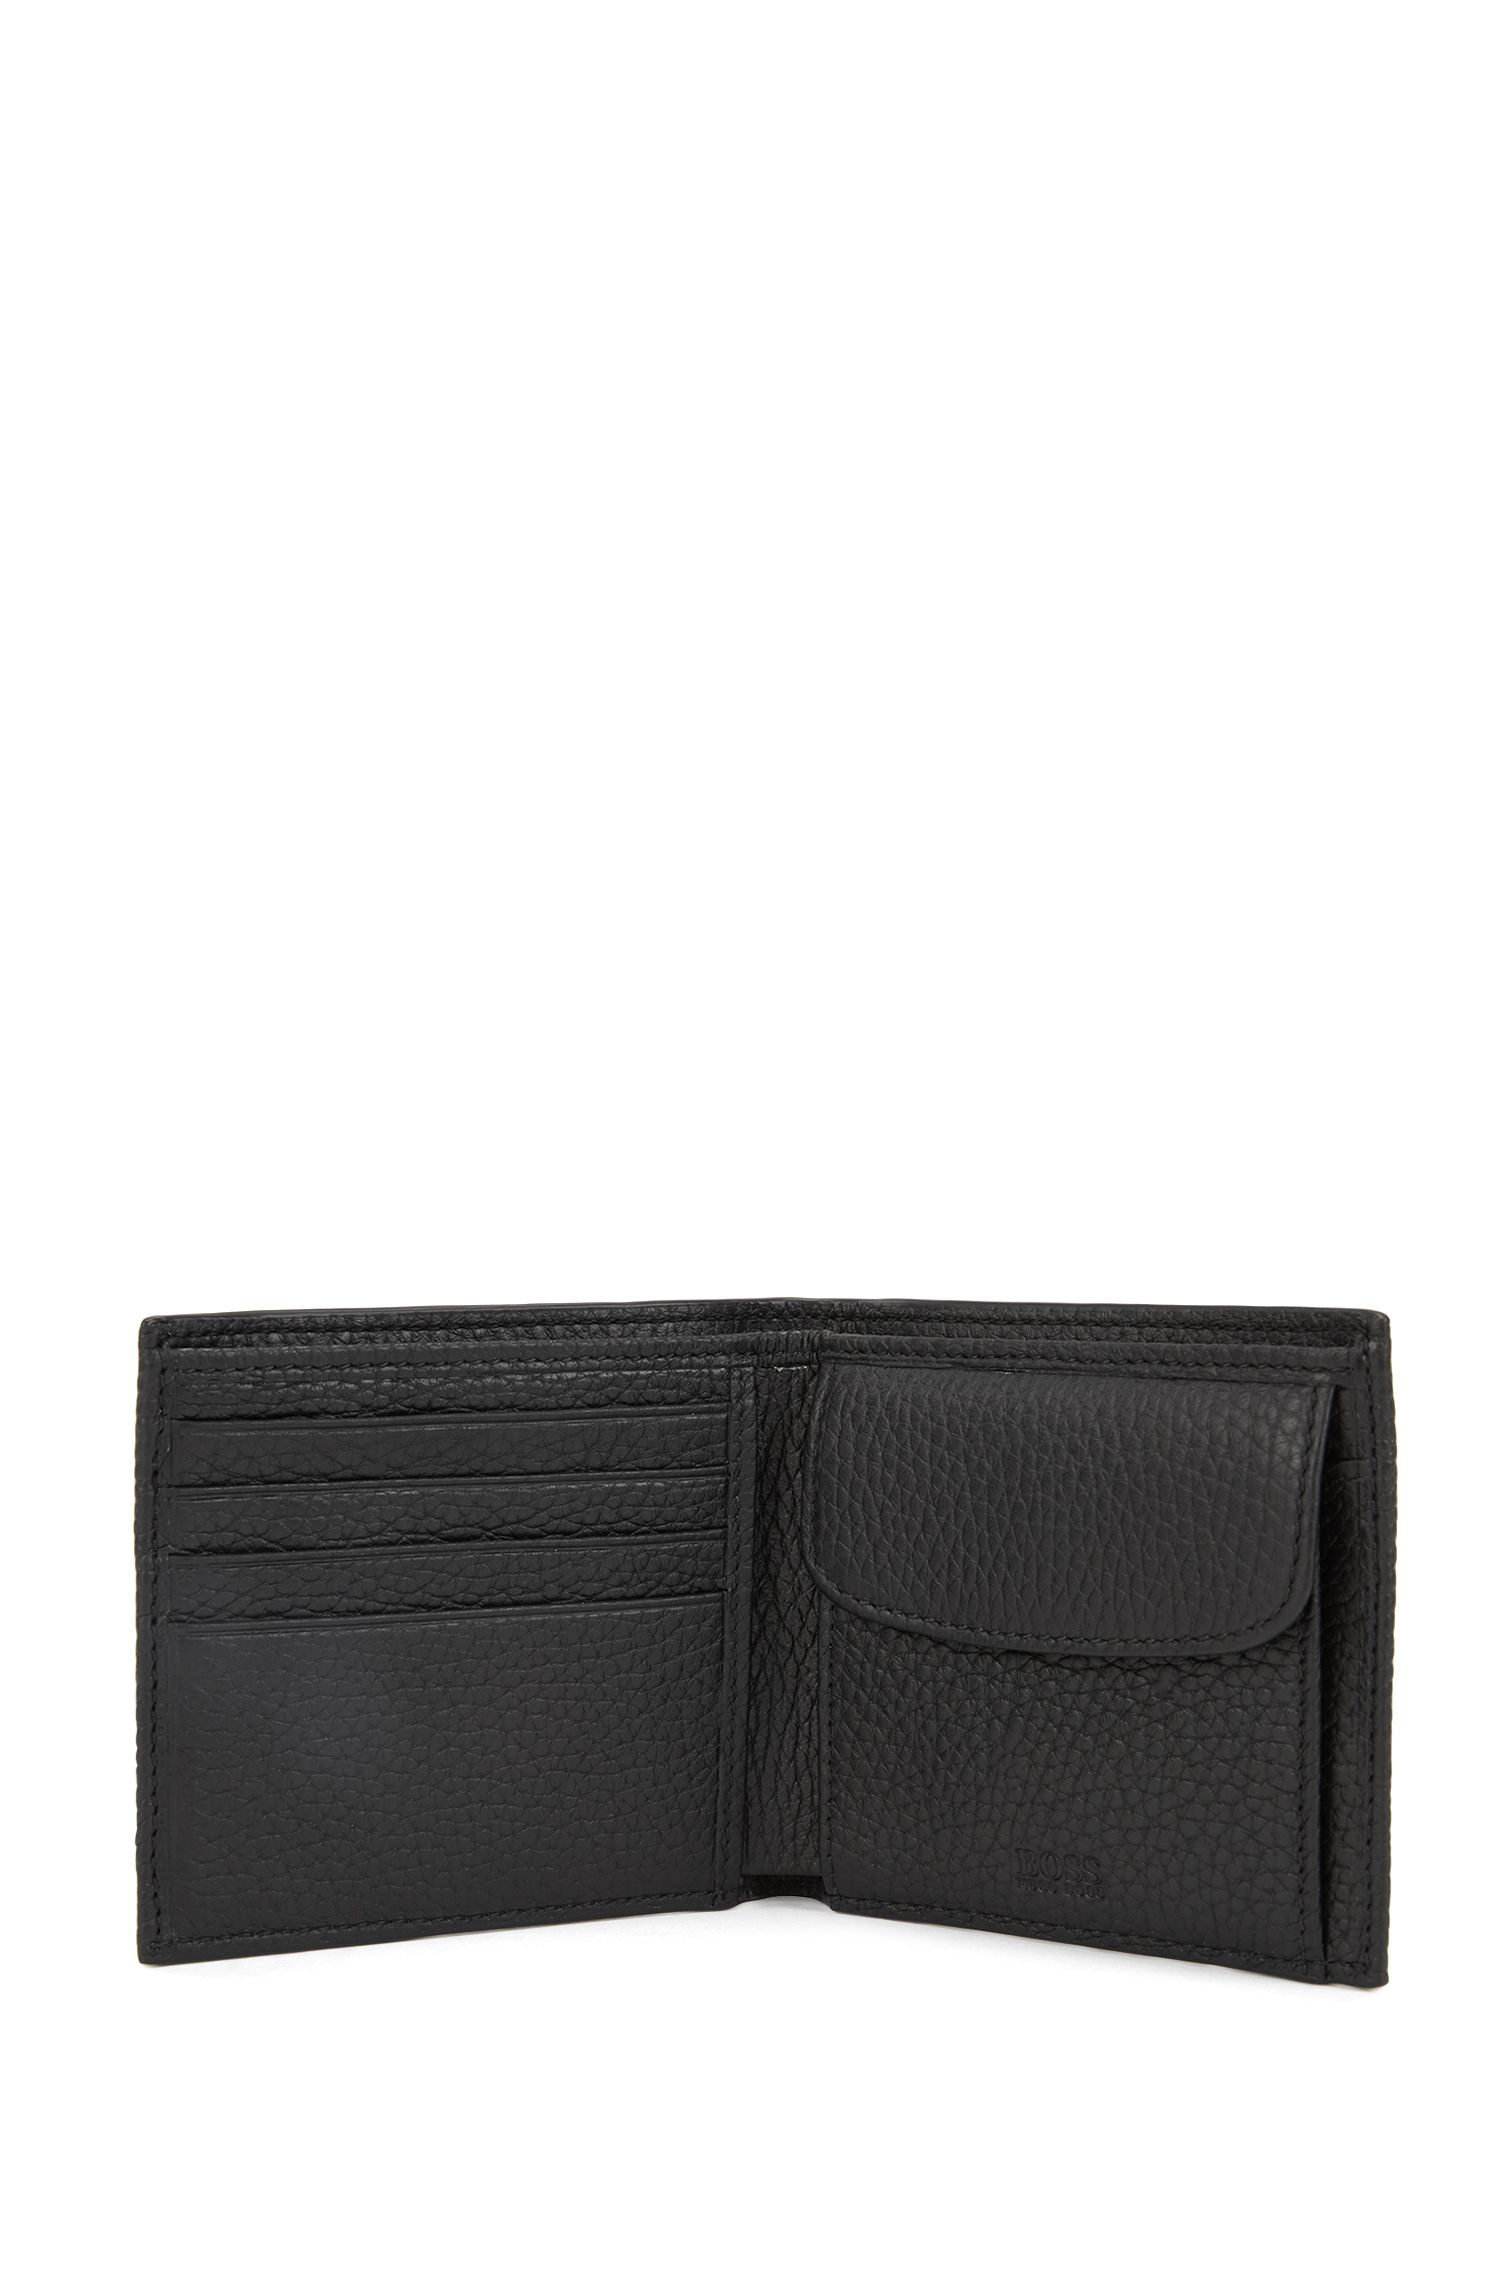 Italian-leather billfold wallet with large grain